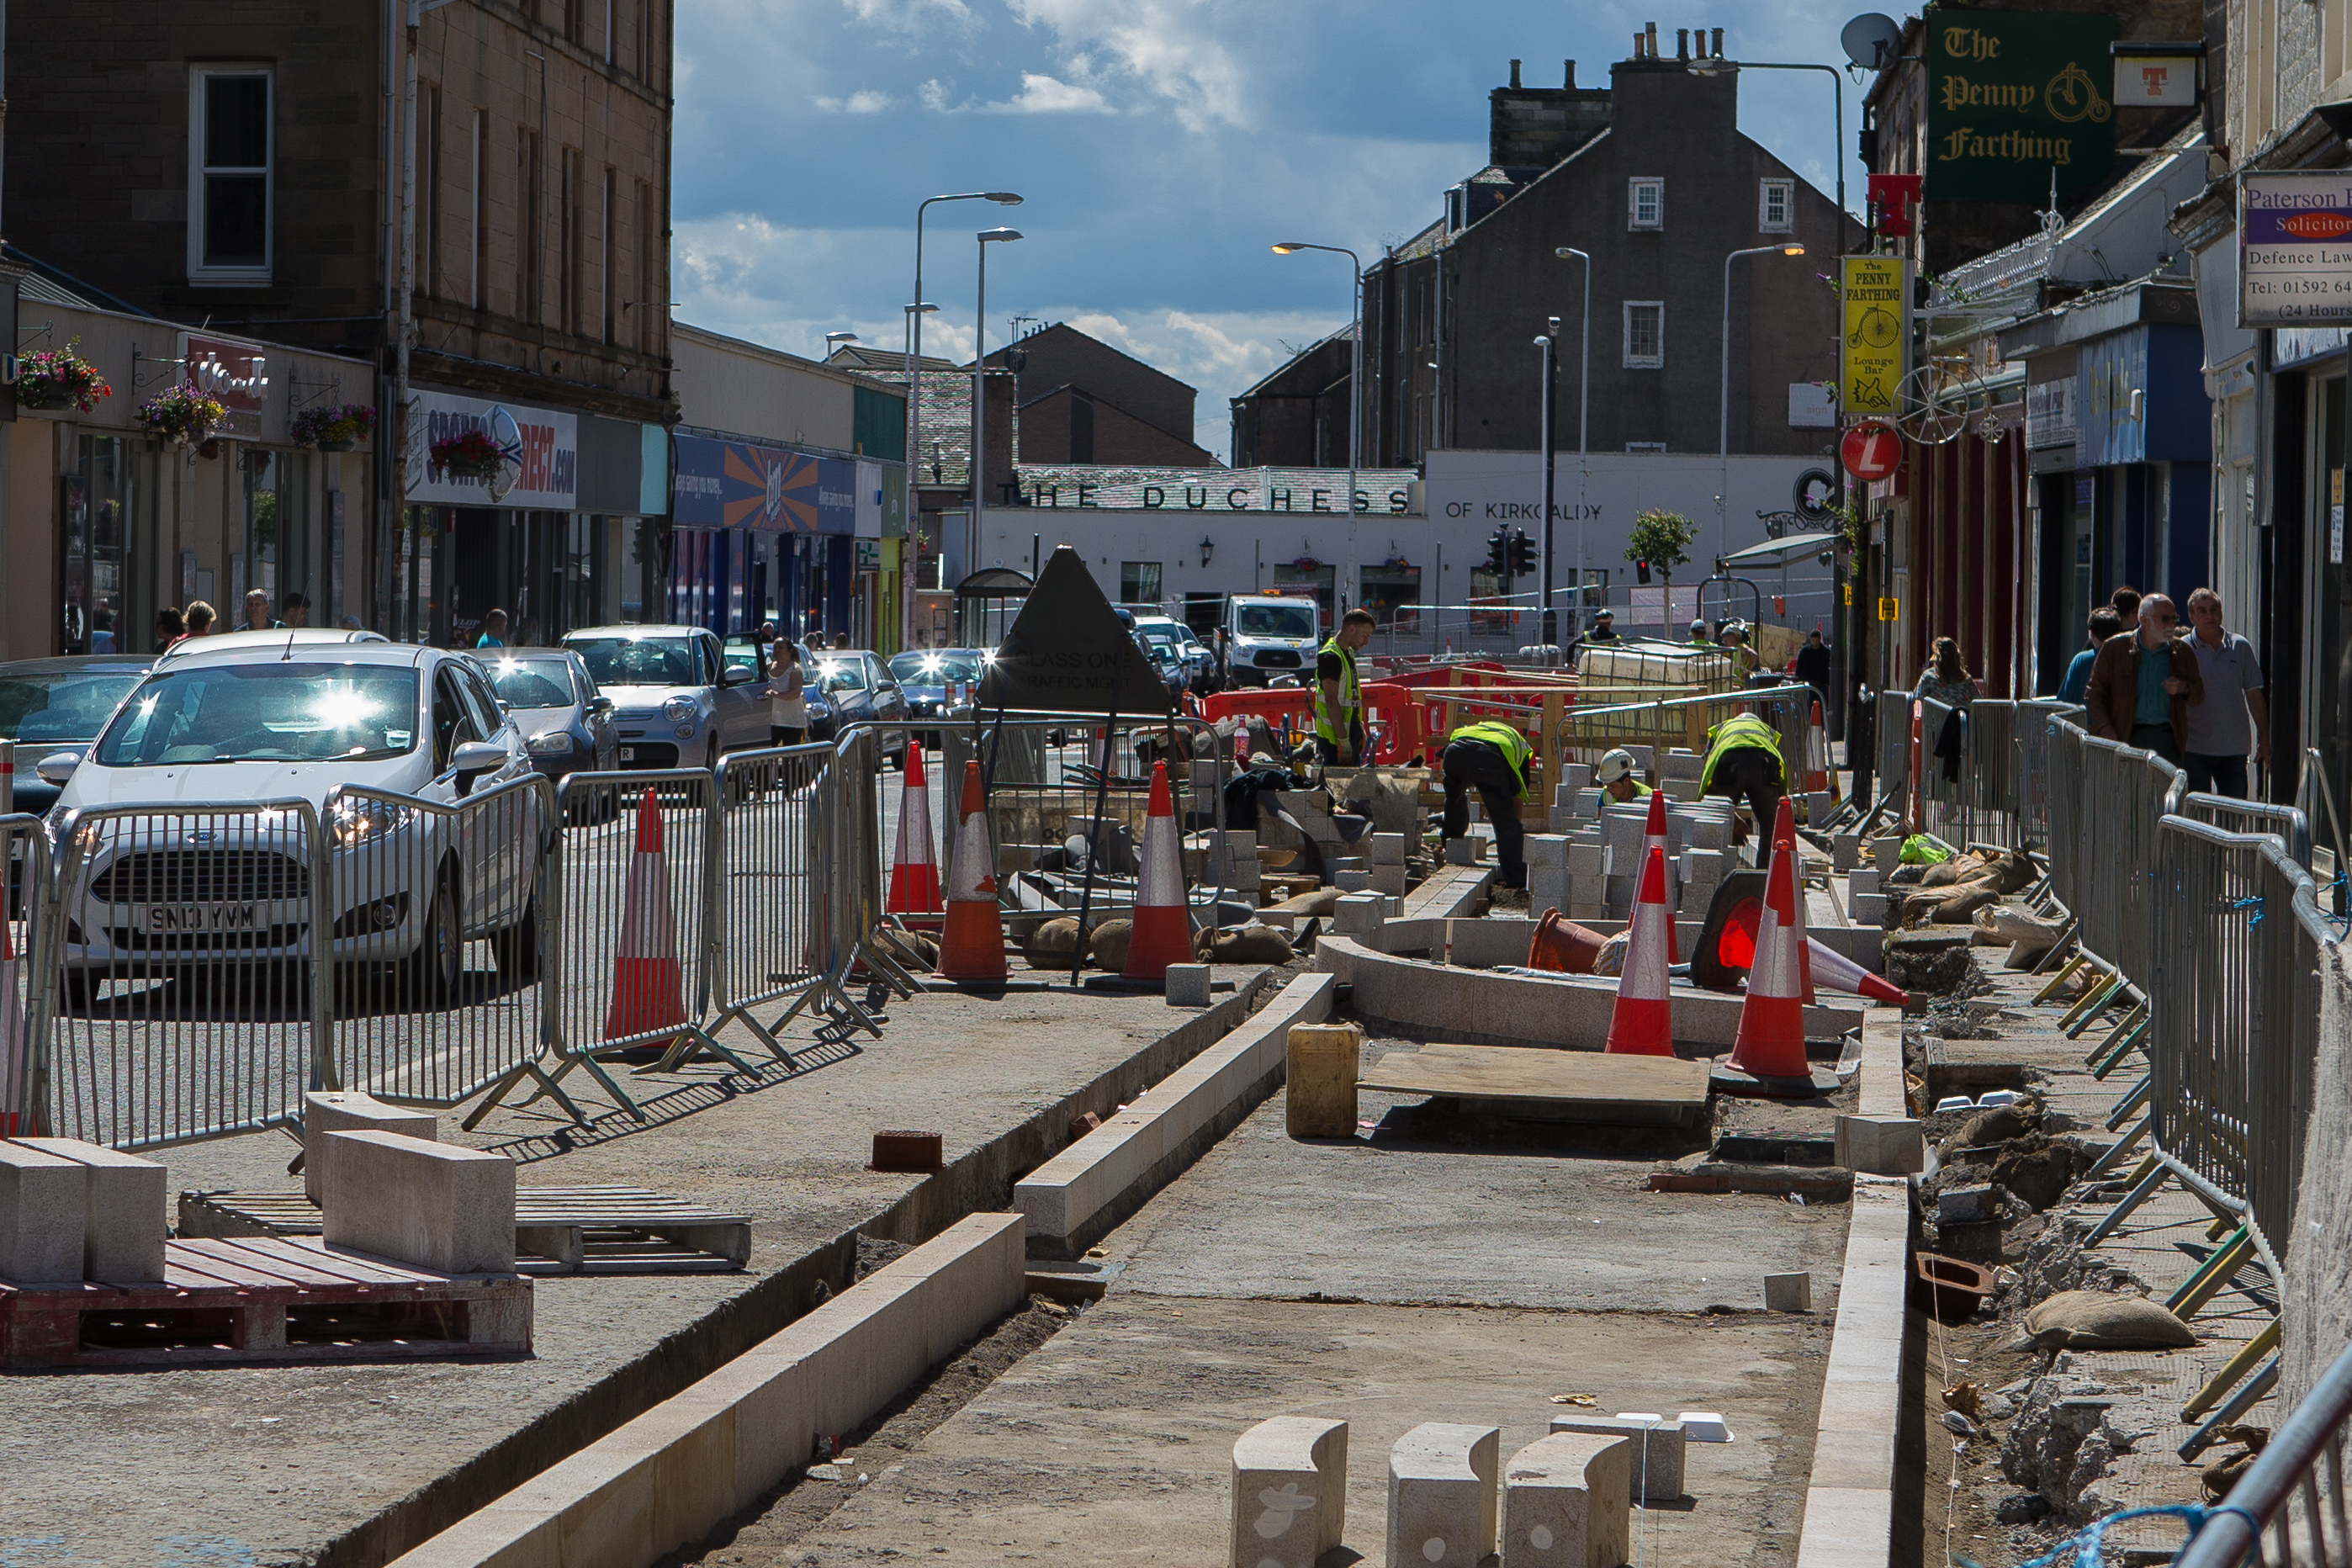 High Street improvement works started in January